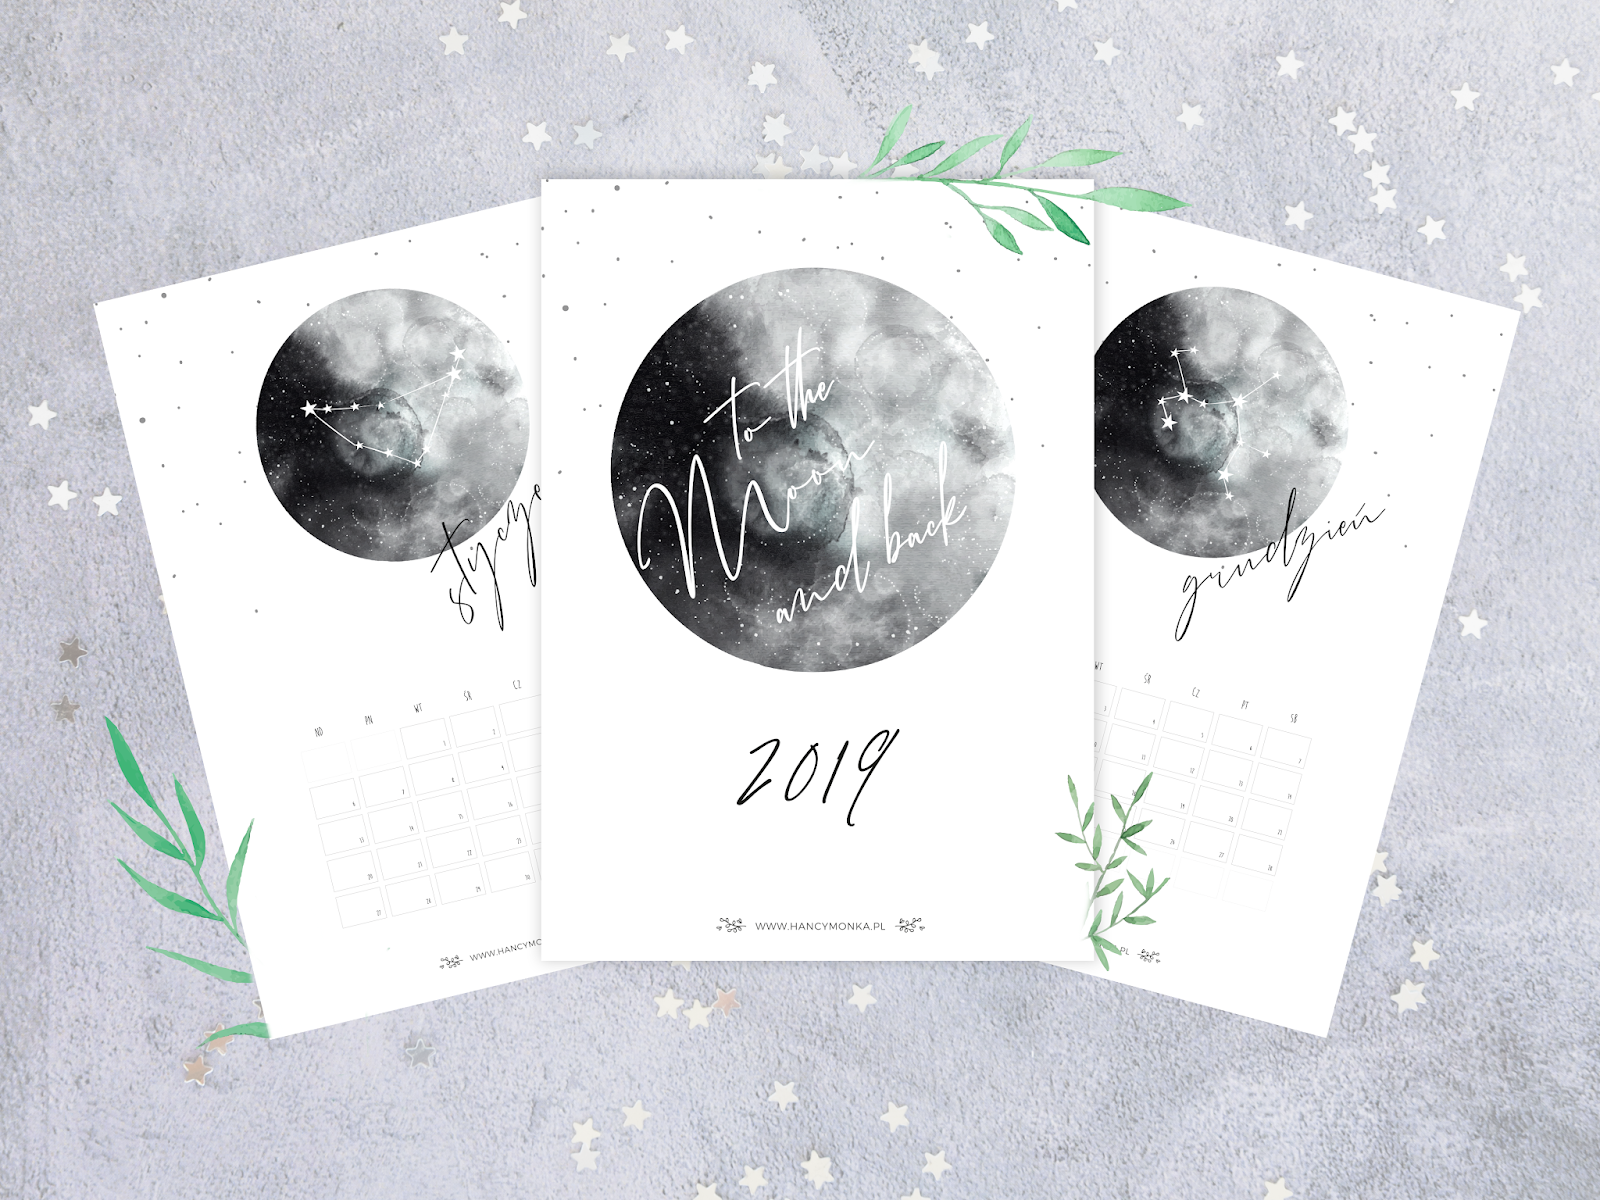 kalendarz 2019, kalendarz 2019 do druku, kalendarz, 2019, prontable calendar, calendar 2019, freebie, moon calendar, to the moon and back, hancymonka, darmowy kalendarz, pobierz kalendarz, do pobrania, grafika